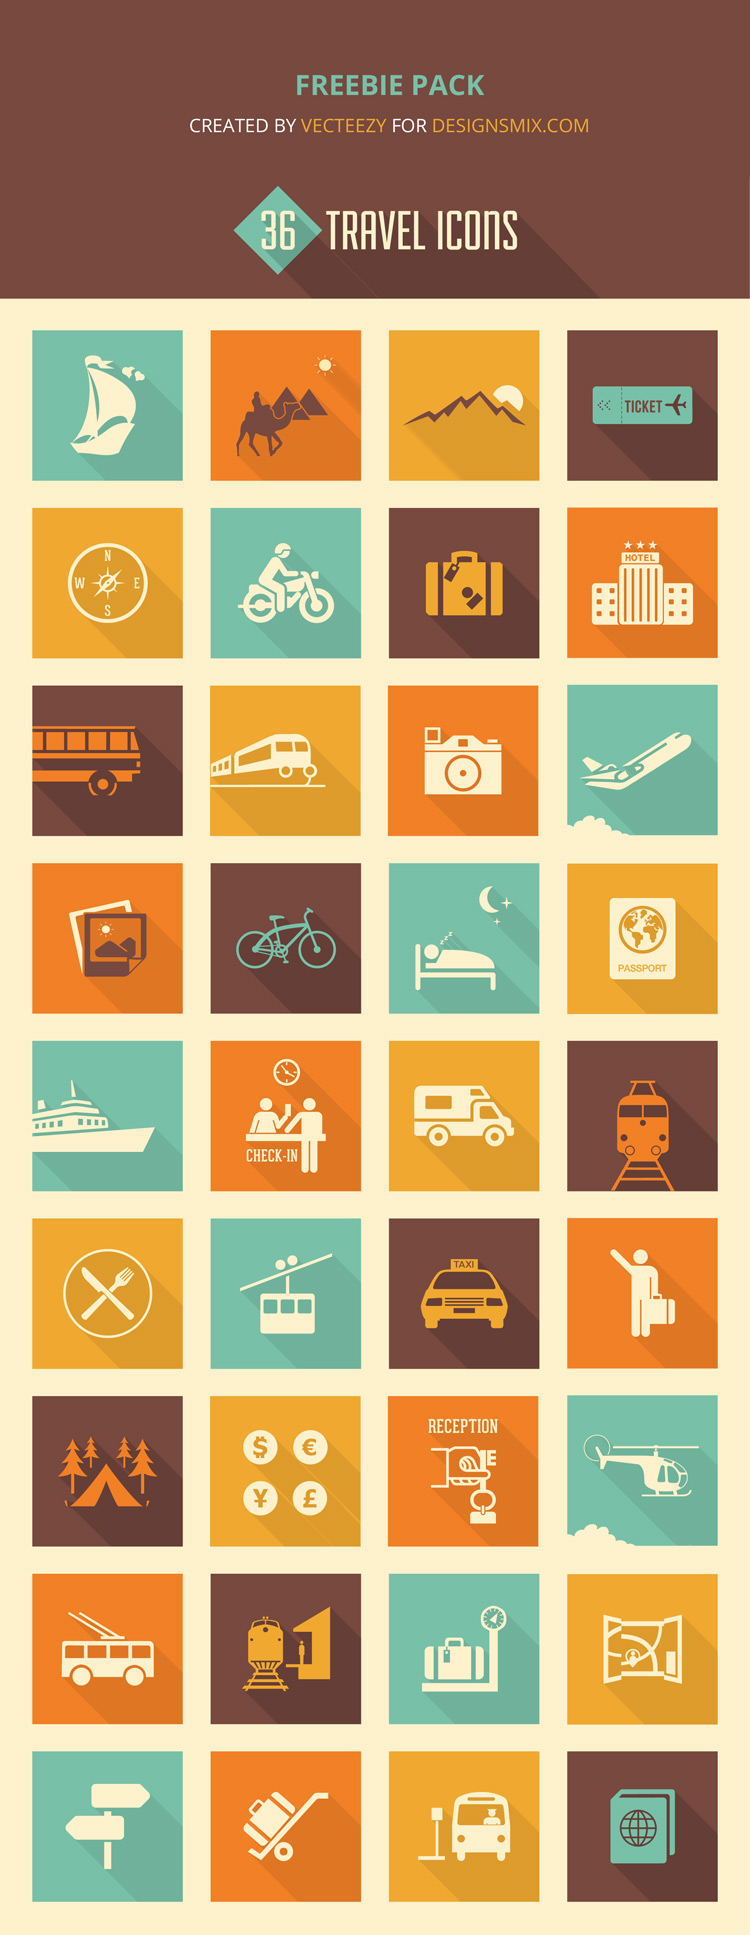 free vector icon set for travel